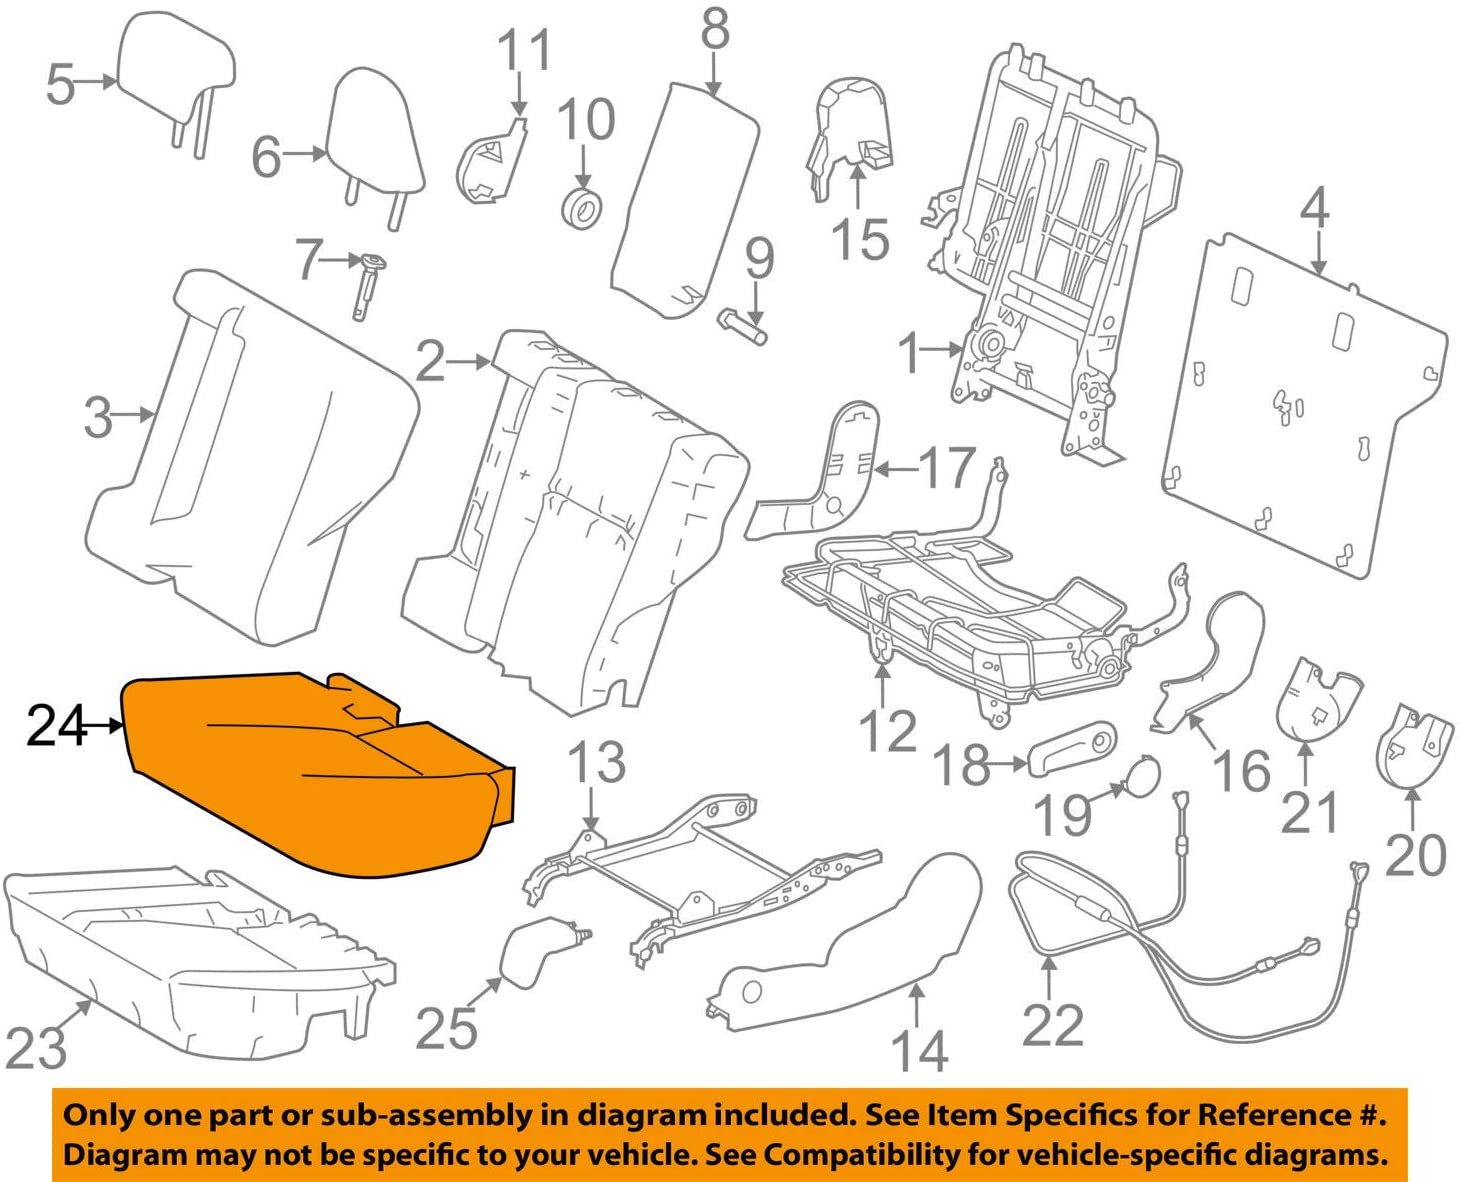 Sale Sale SALE% OFF special price TOYOTA Genuine 71076-0R080-A3 Seat Cover Cushion